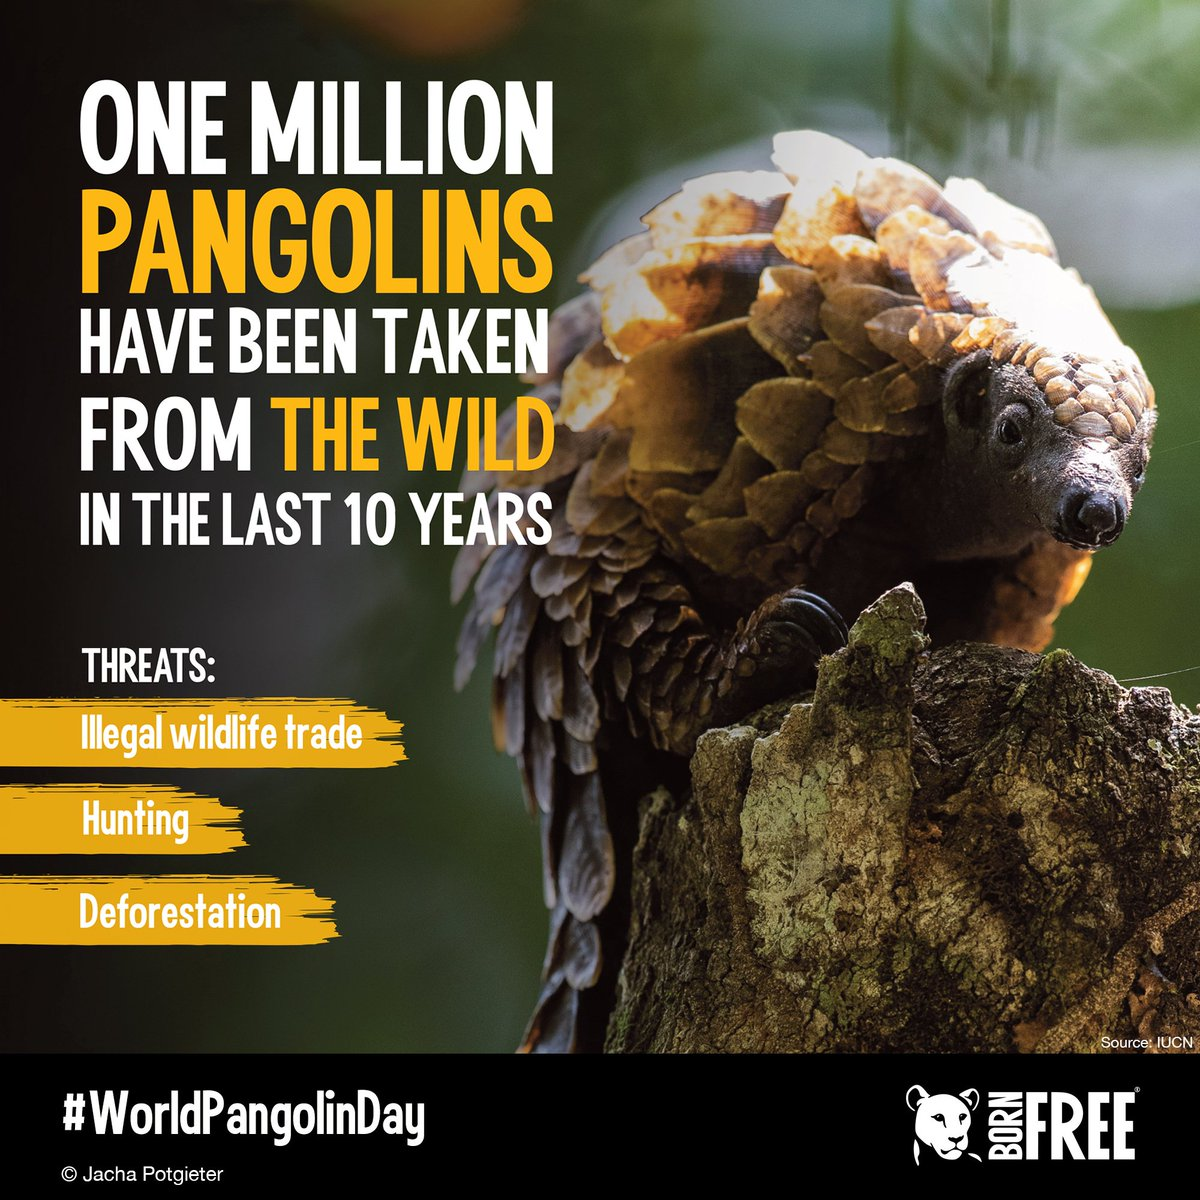 It's World Pangolin Day! One million pangolins have been taken from the wild in the last decade. With your support we can stop this cruel trade. Visit: https://www.bornfree.org.uk/animals/pangolins … #WorldPangolinDay #KeepWildlifeInTheWild #EndWildlifeCrime